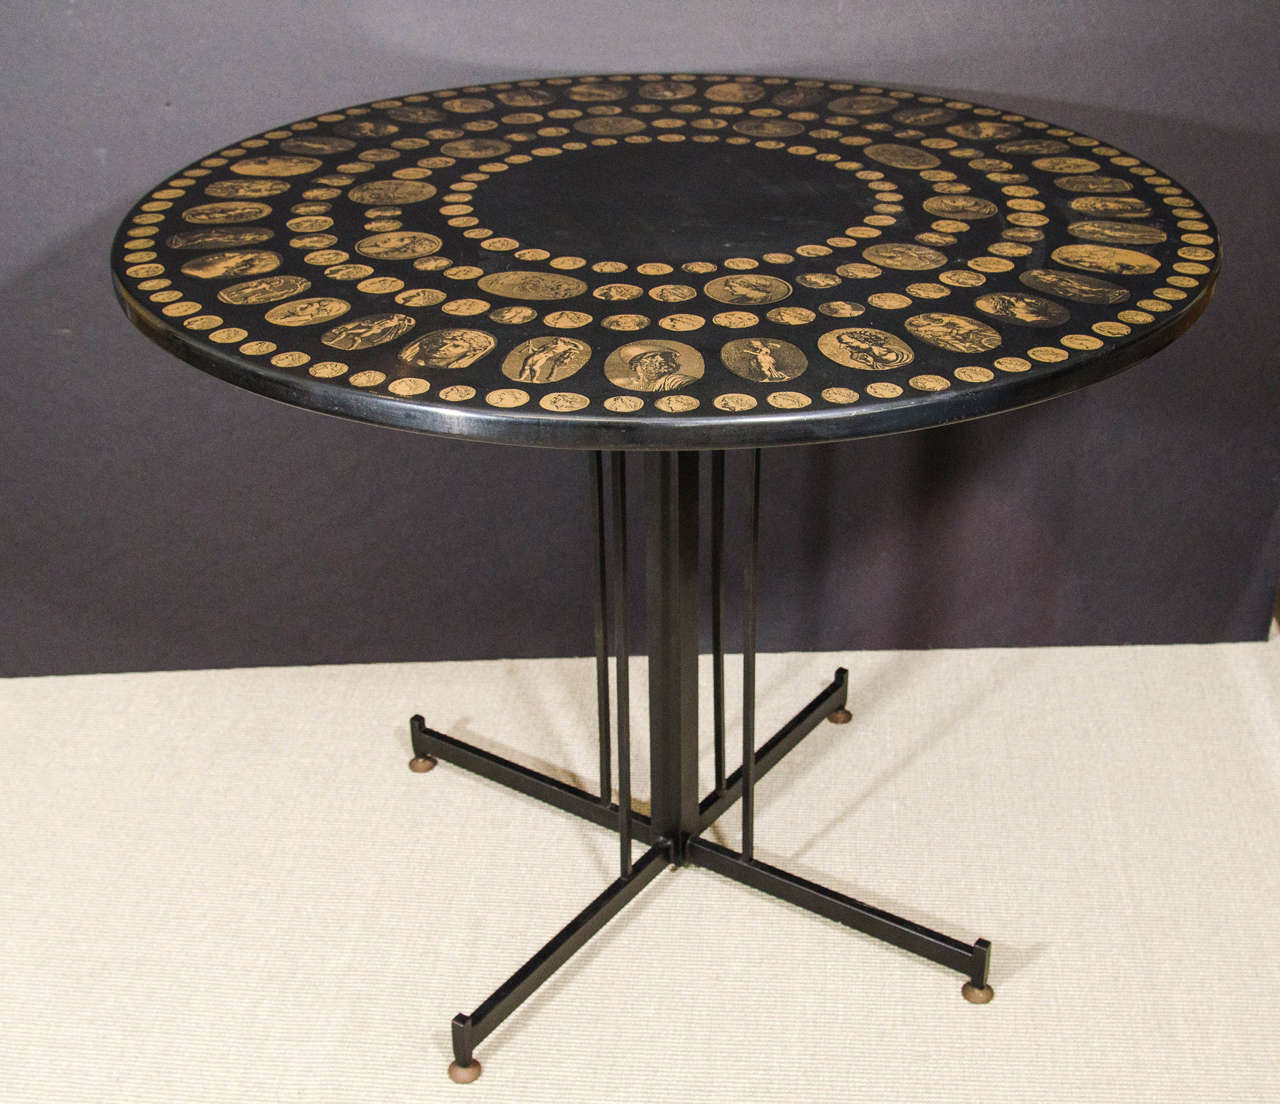 Fornasetti Table With Roman Emperor Medallion Heads, 1950s Italy 2